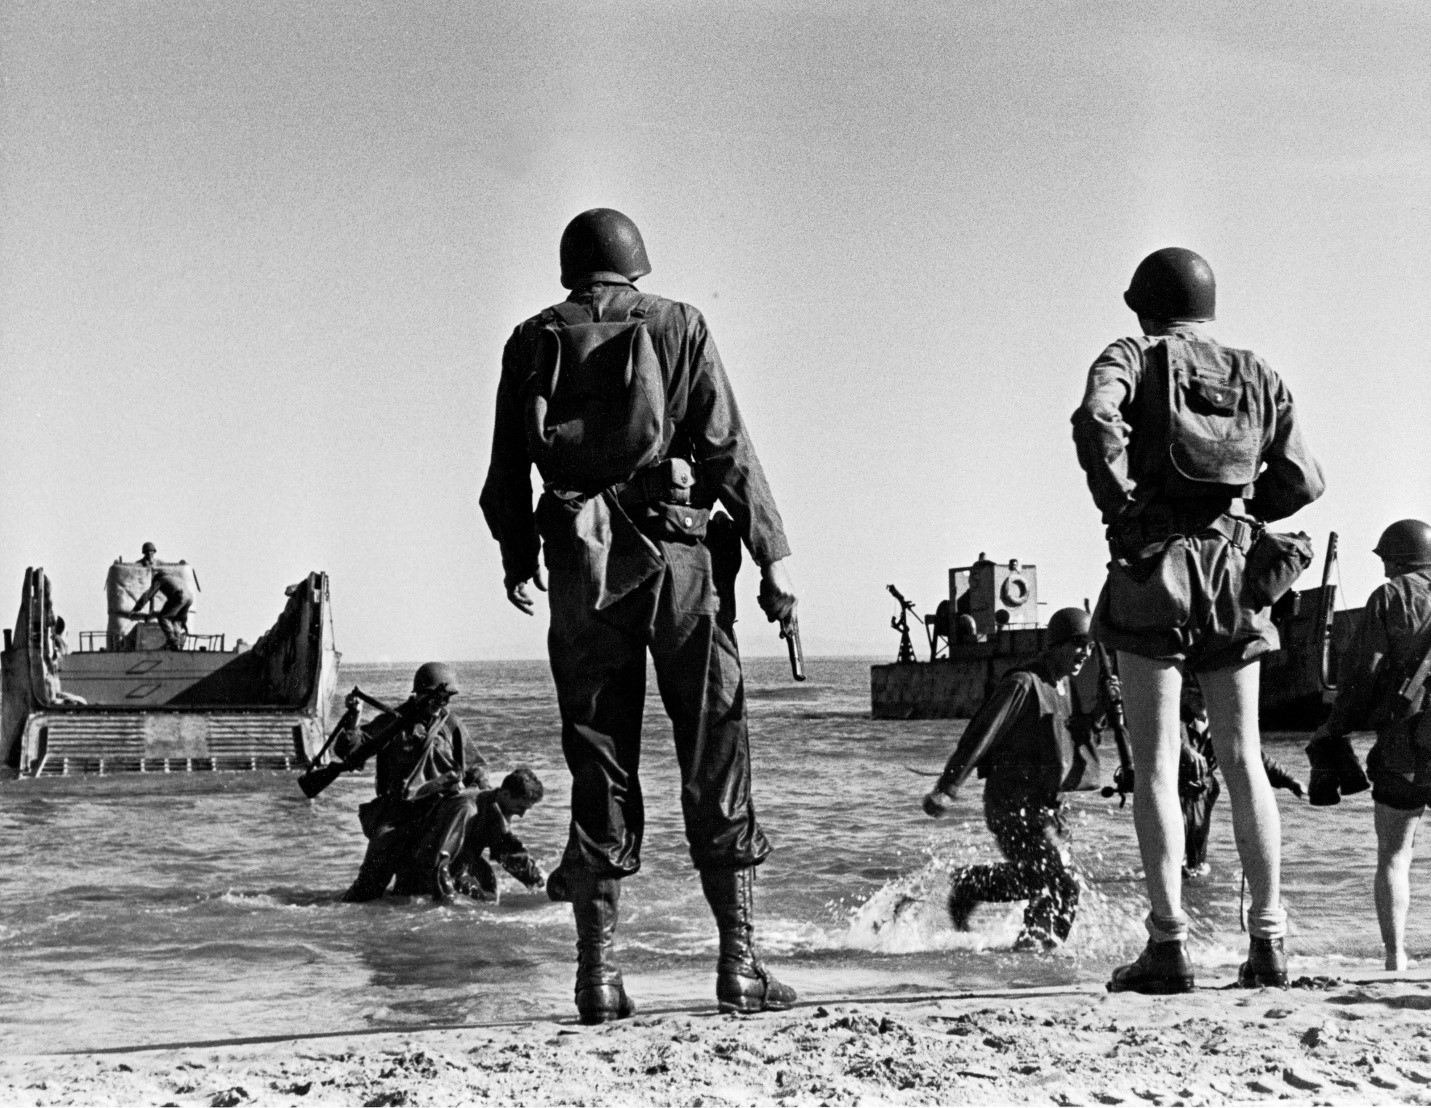 Rangers disembark onto the landing beach in North Africa